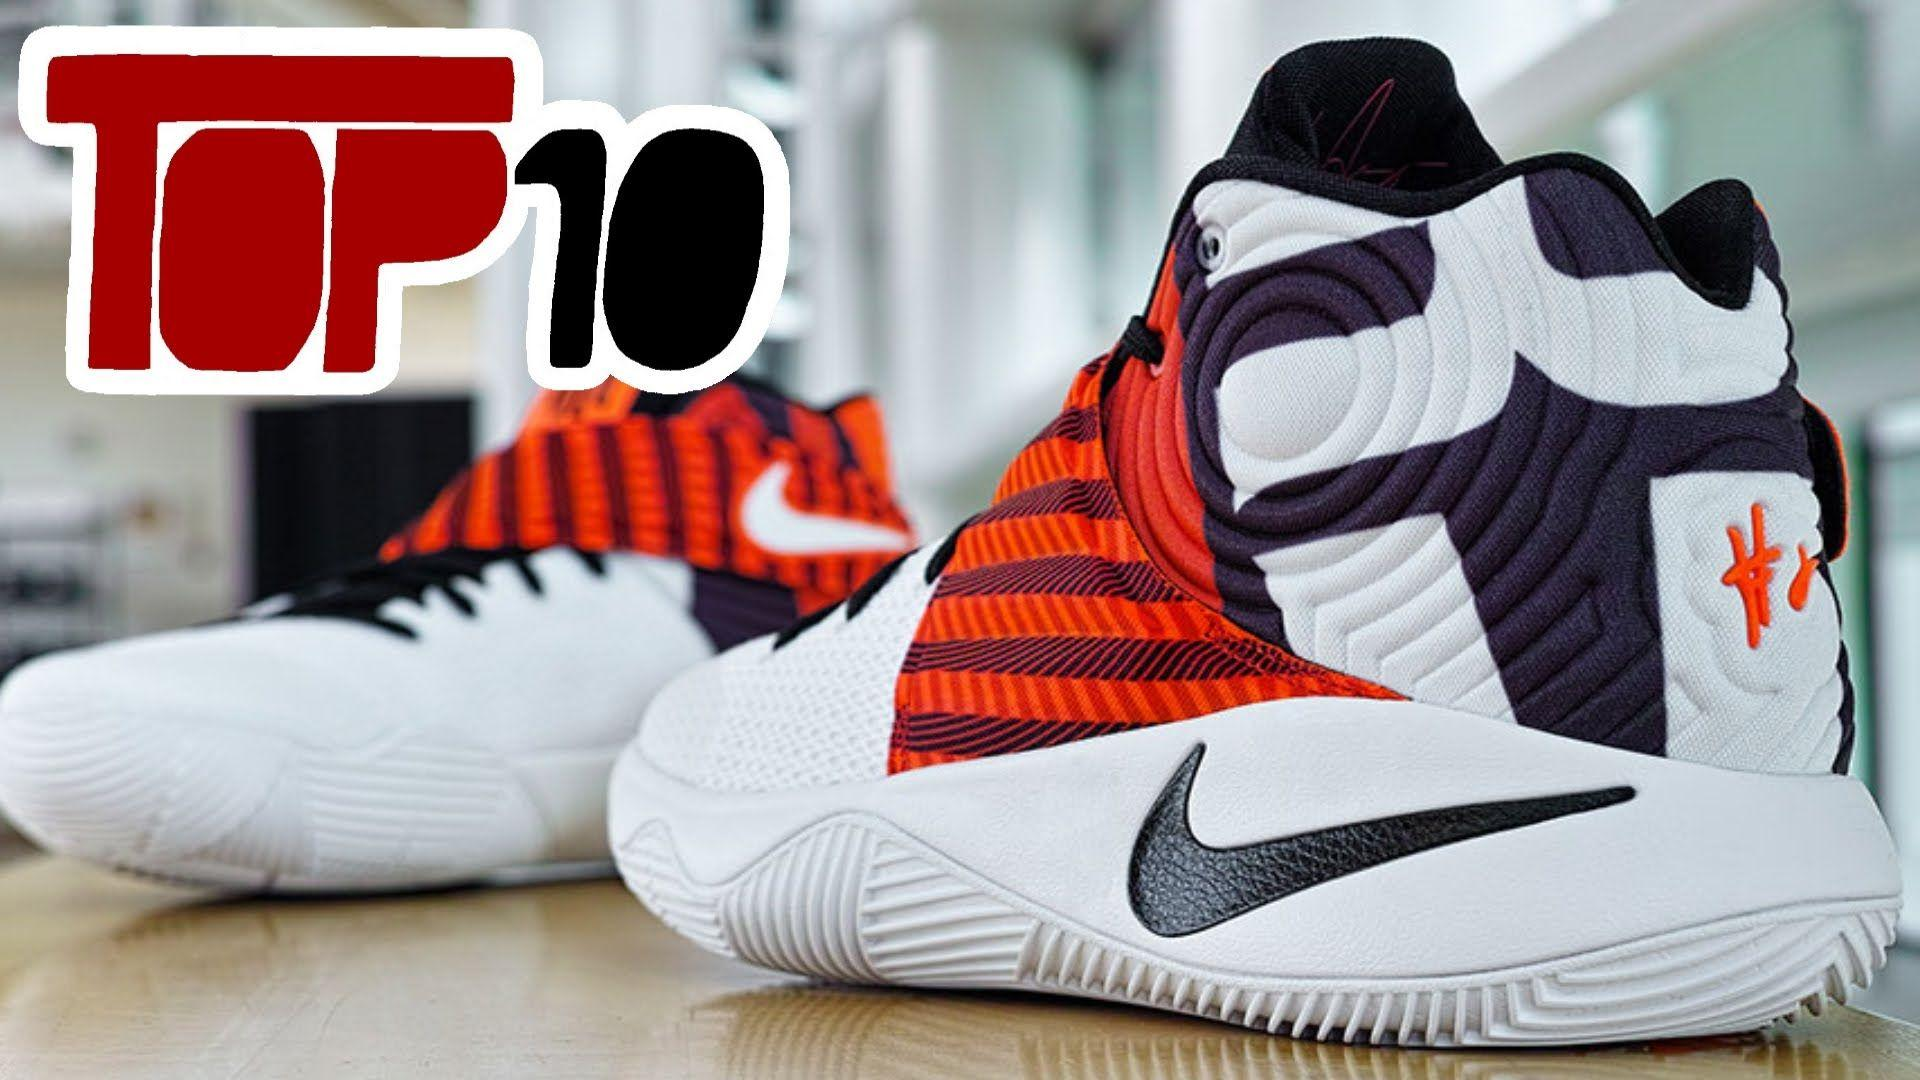 aac29c5ddbc24c Top 10 Nike Kyrie 2 Shoes Of 2016 - YouTube